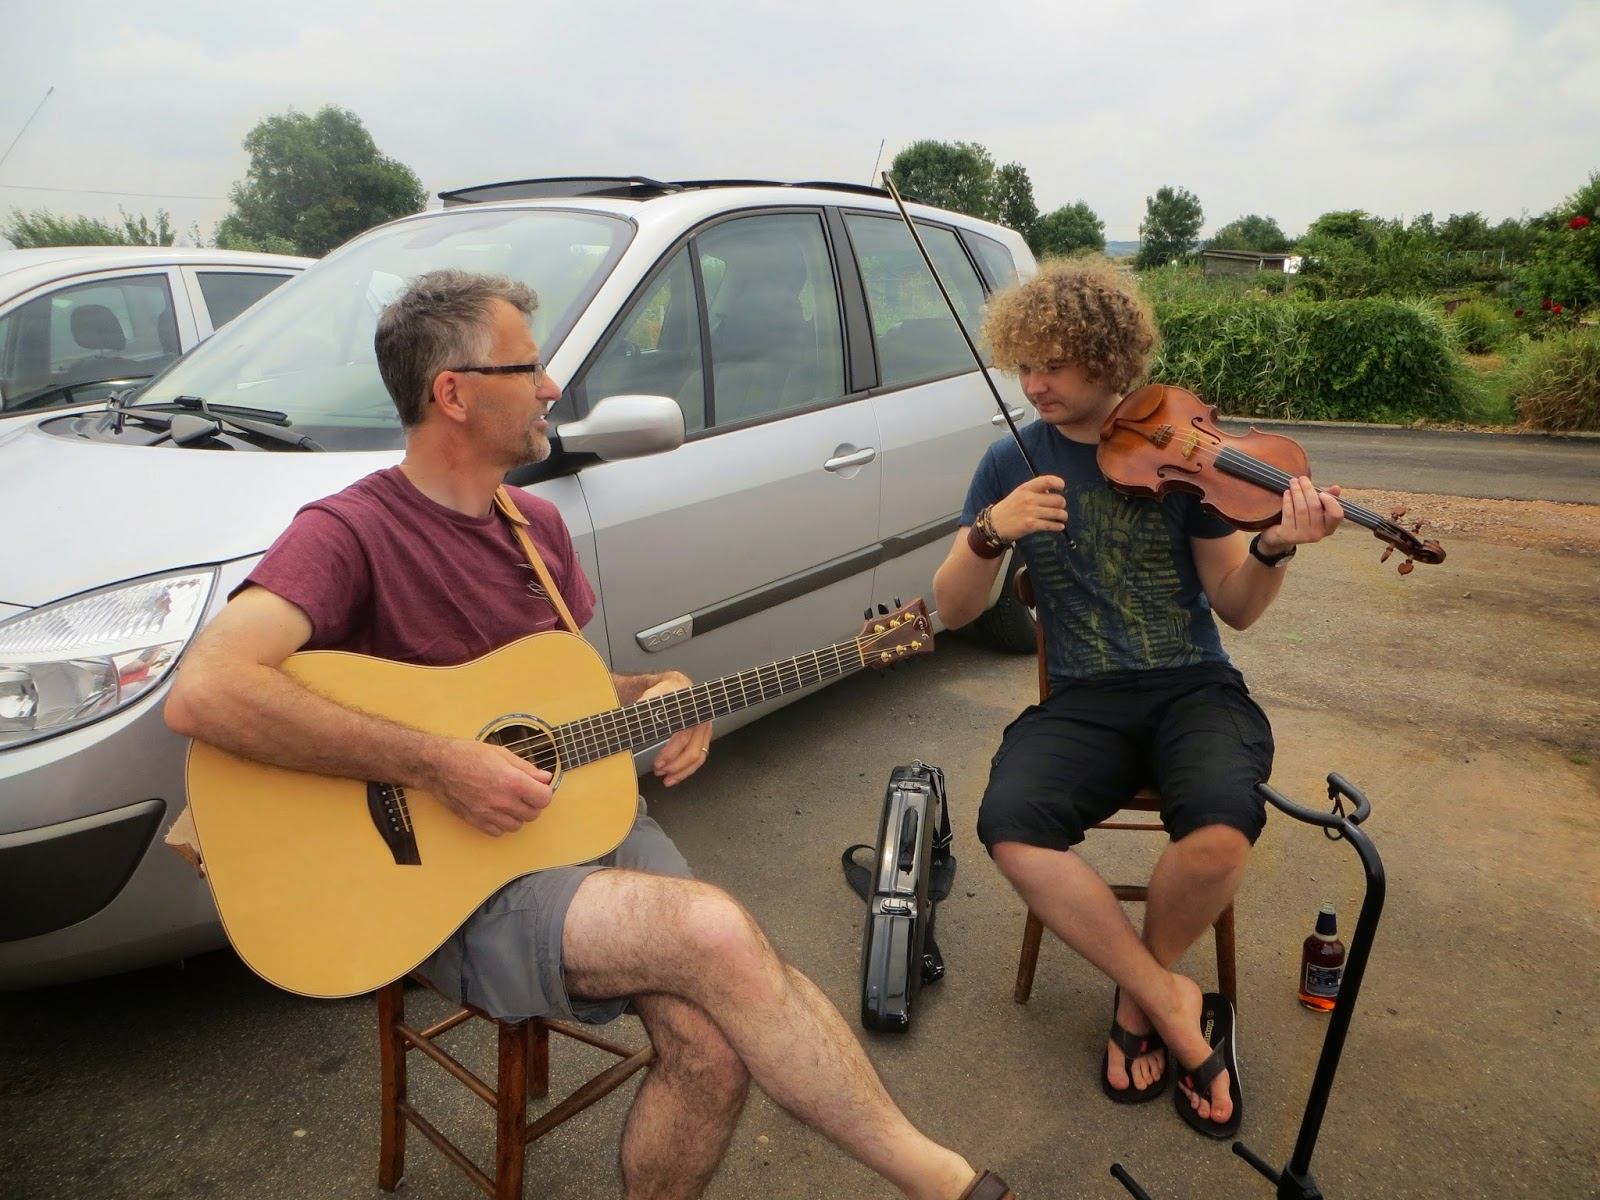 live music from the locals throughout the bbq was lovely.